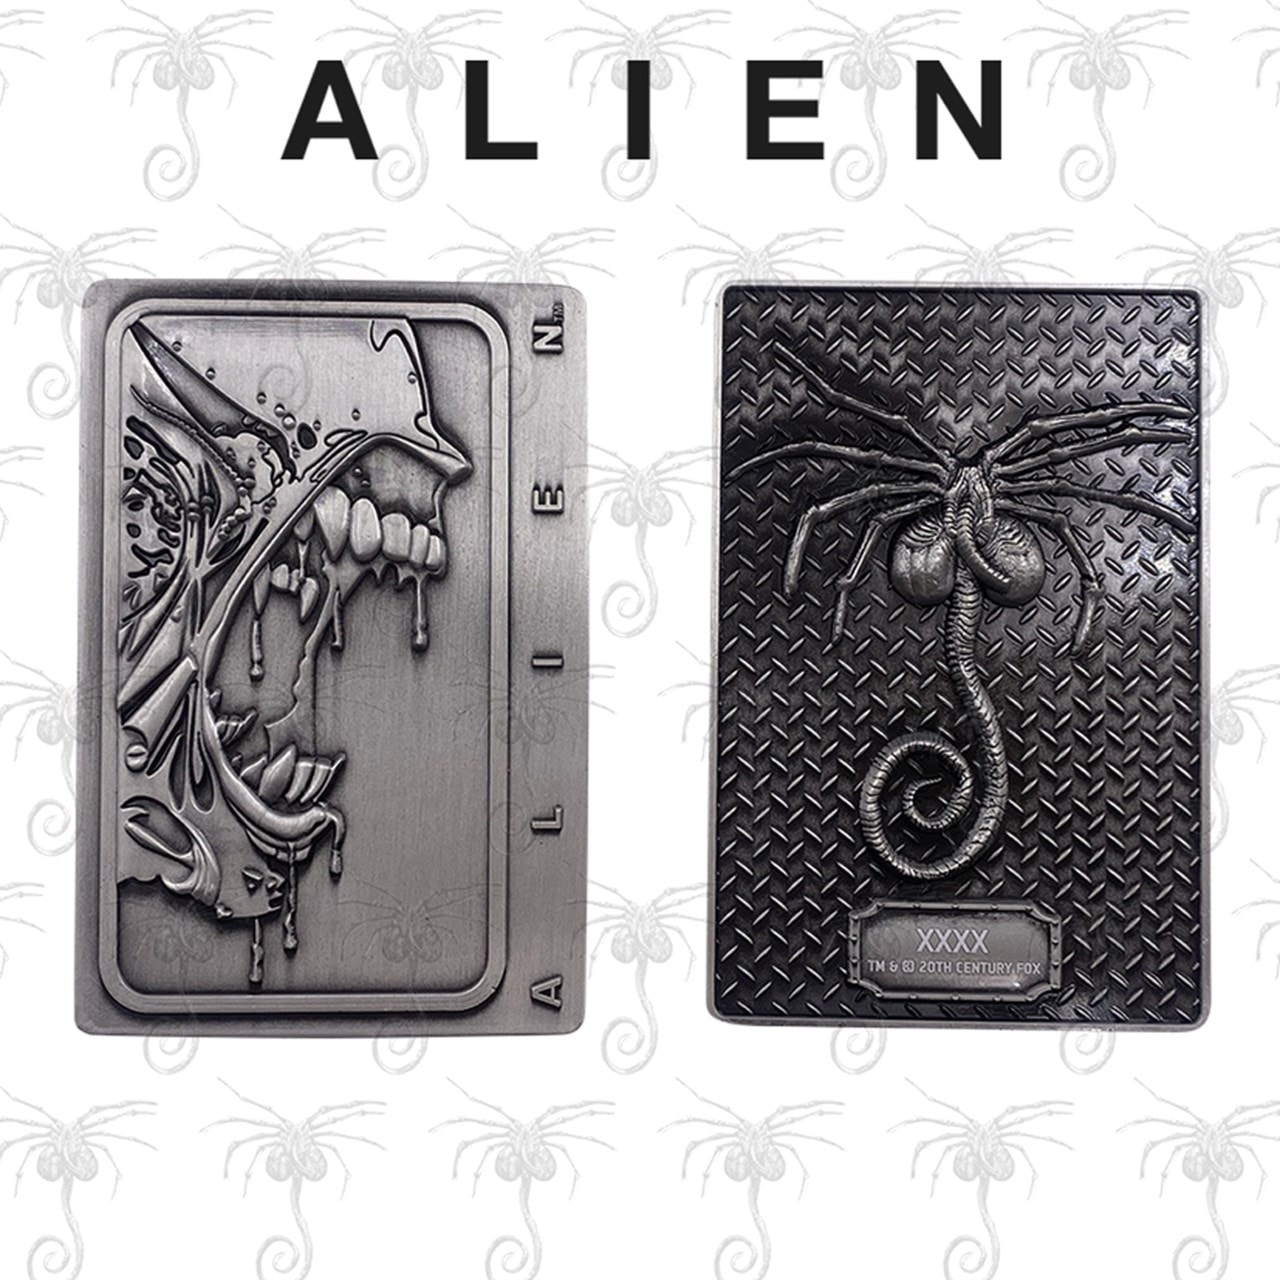 Xenomorph: Alien Antique Silver Metal Collectible (online only) - 1